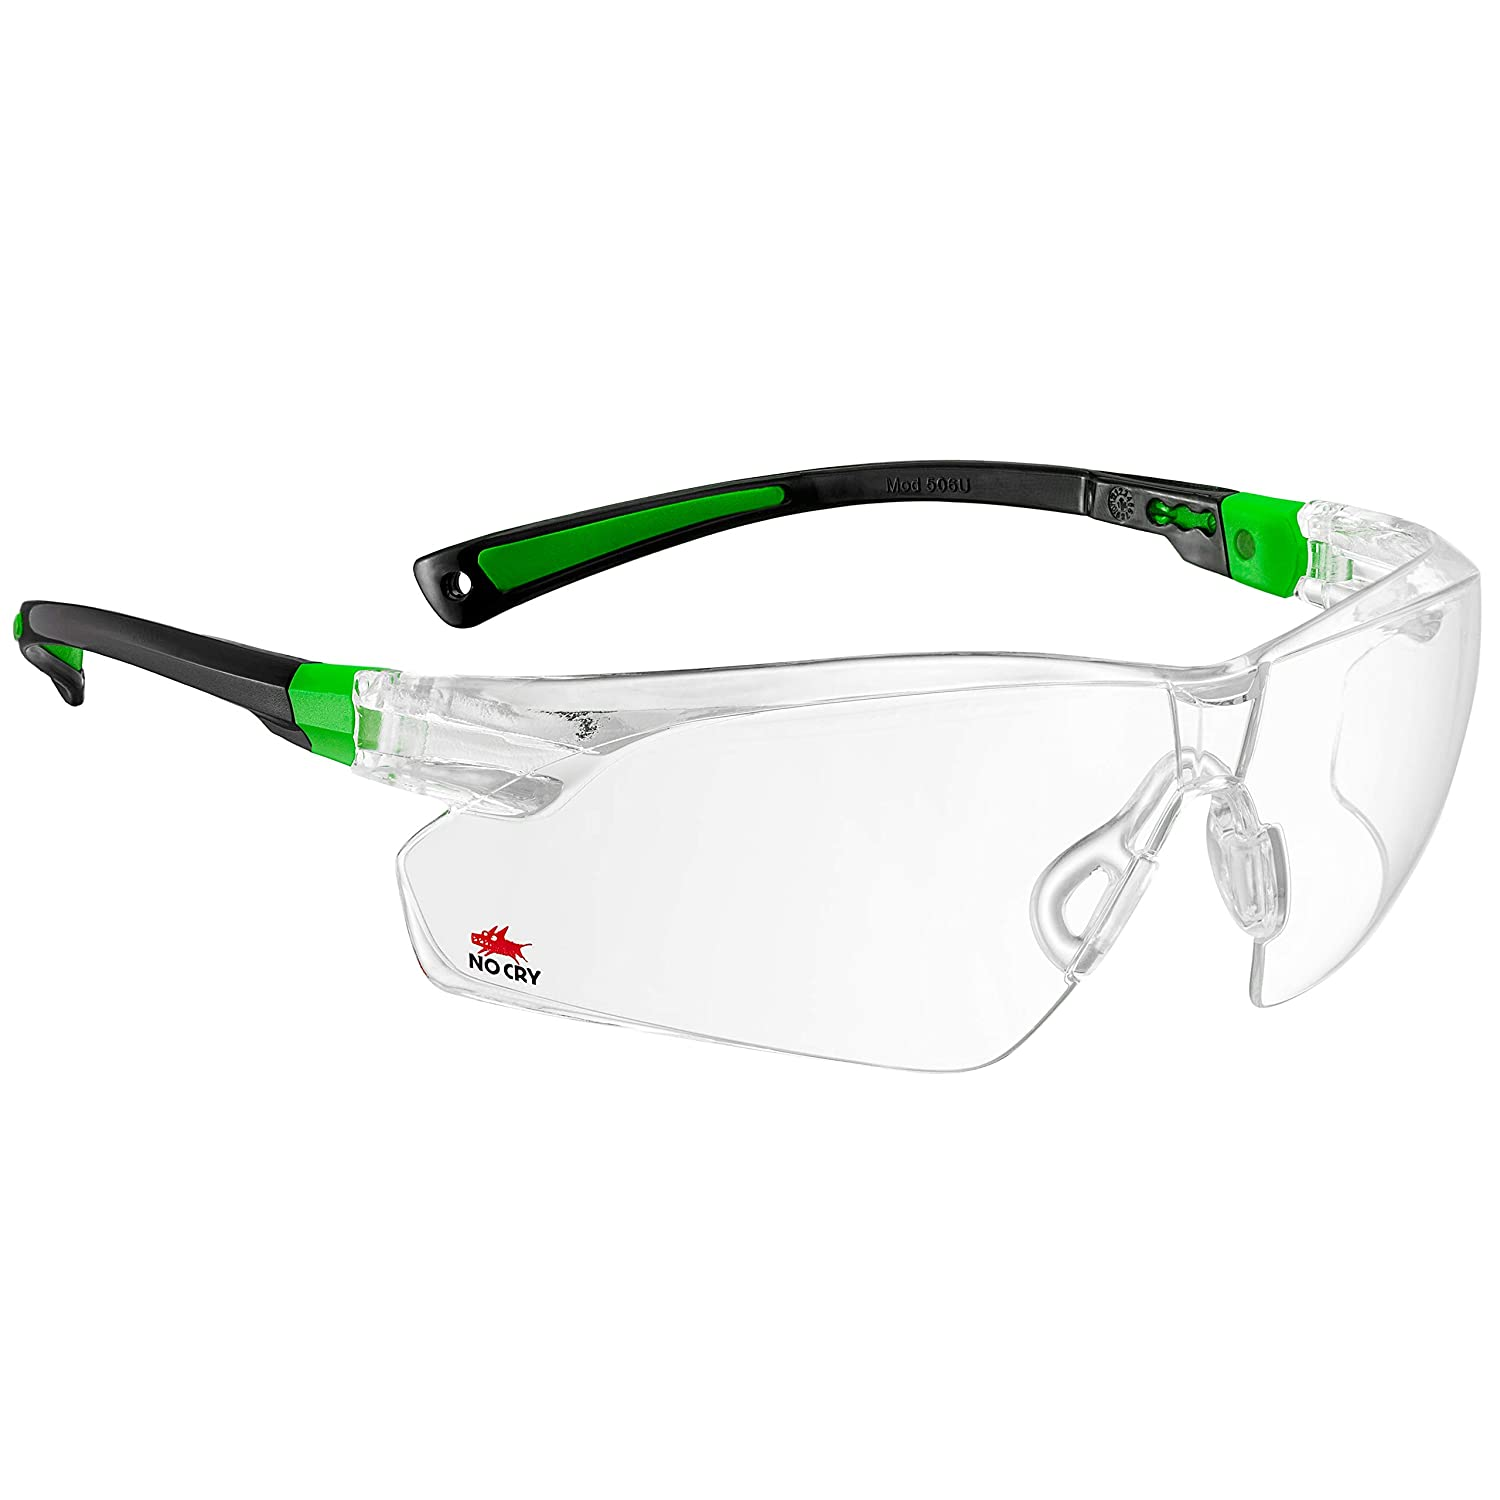 38e3b95042 NoCry Safety Glasses with Clear Anti Fog Scratch Resistant Wrap-Around  Lenses and No-Slip Grips